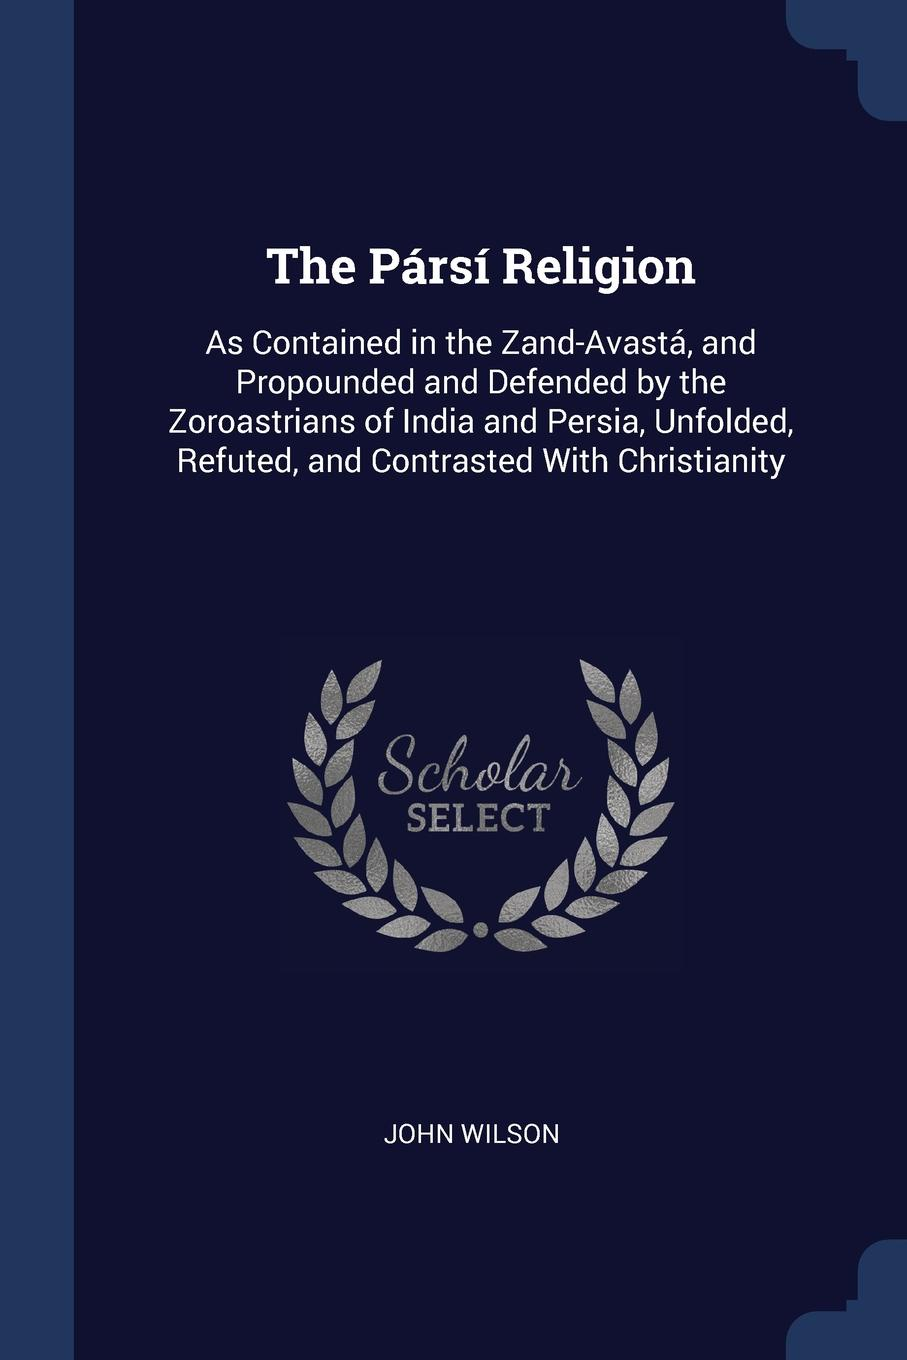 John Wilson The Parsi Religion. As Contained in the Zand-Avasta, and Propounded Defended by Zoroastrians of India Persia, Unfolded, Refuted, Contrasted With Christianity